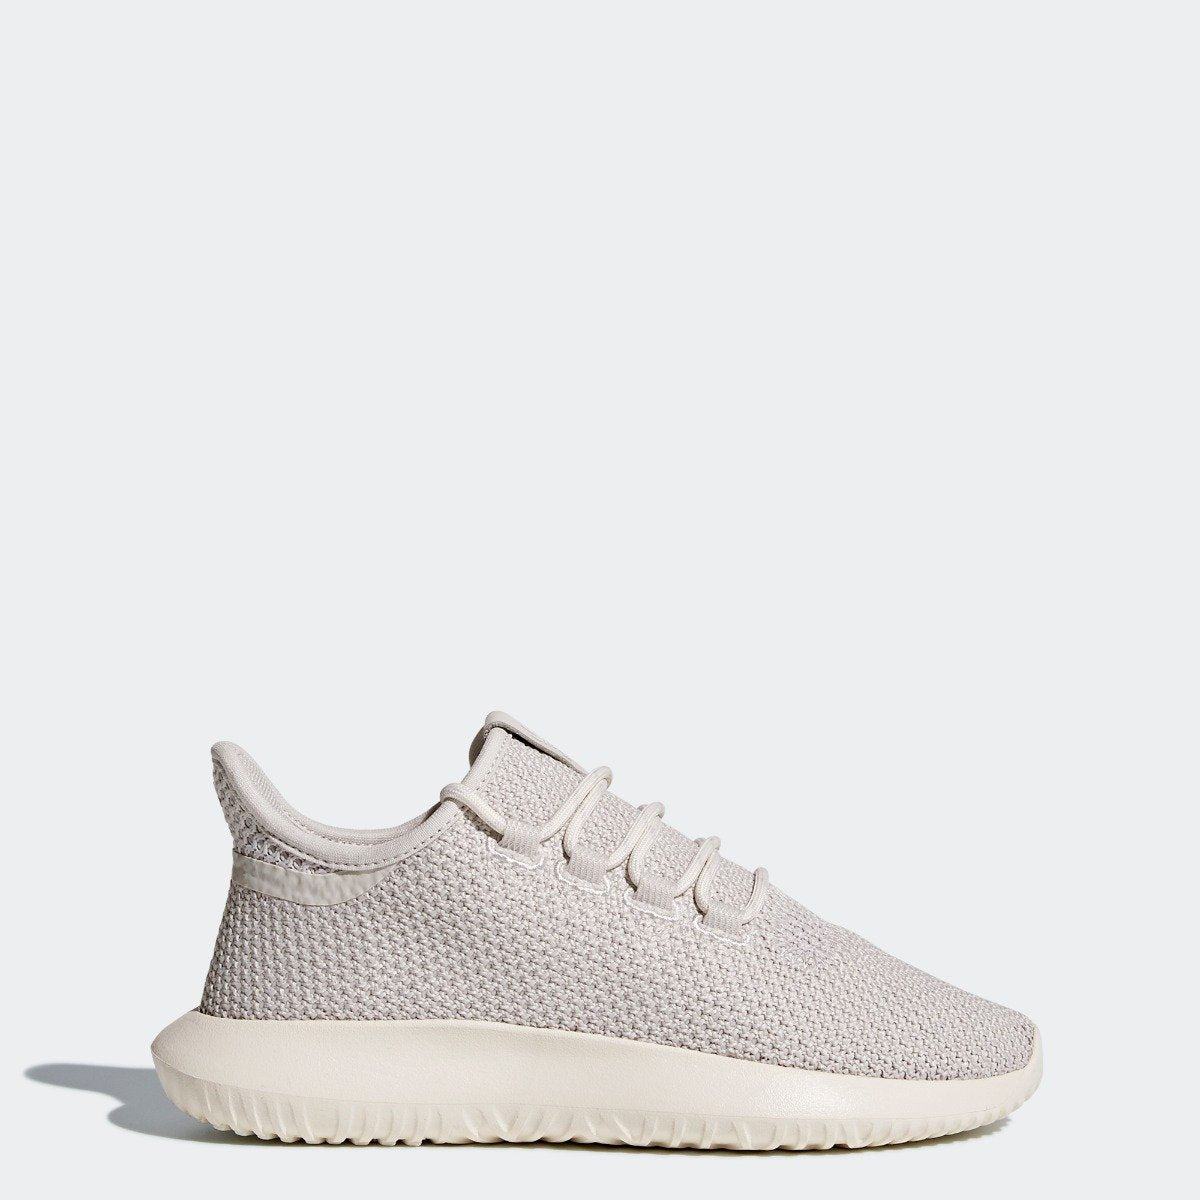 sale retailer d4431 f594c Kid's adidas Originals Tubular Shadow Shoes Chalk Pearl - 4Y / CREAM